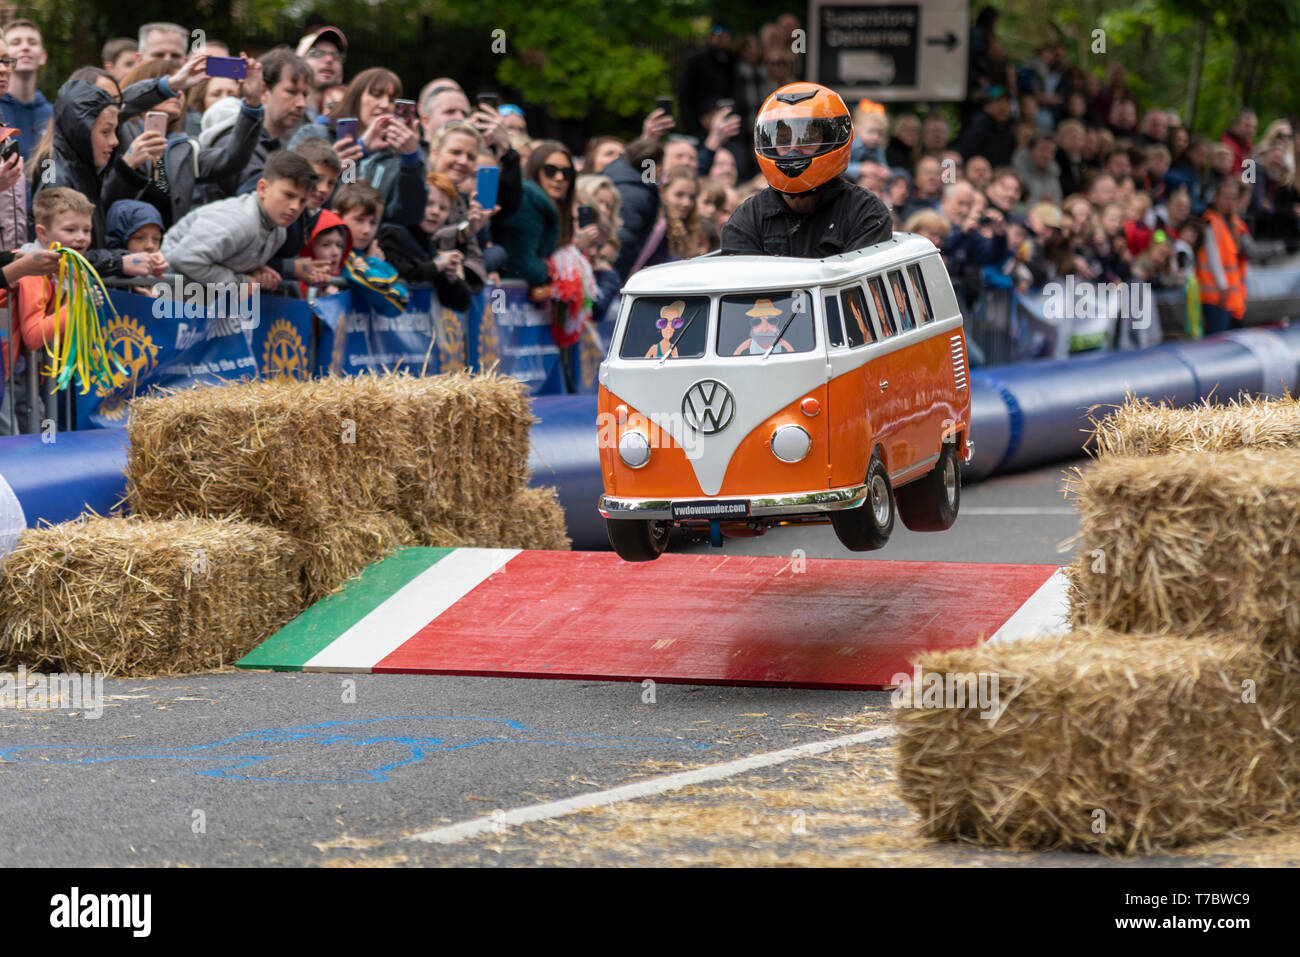 traditional-british-bank-holiday-monday-event-soapbox-derby-involving-handmade-carts-racing-down-a-course-using-gravity-alone-for-power-event-organised-by-the-rotary-club-of-billericay-for-charity-down-a-closed-section-of-road-with-added-jumps-and-chicane-T7BWC9.jpg